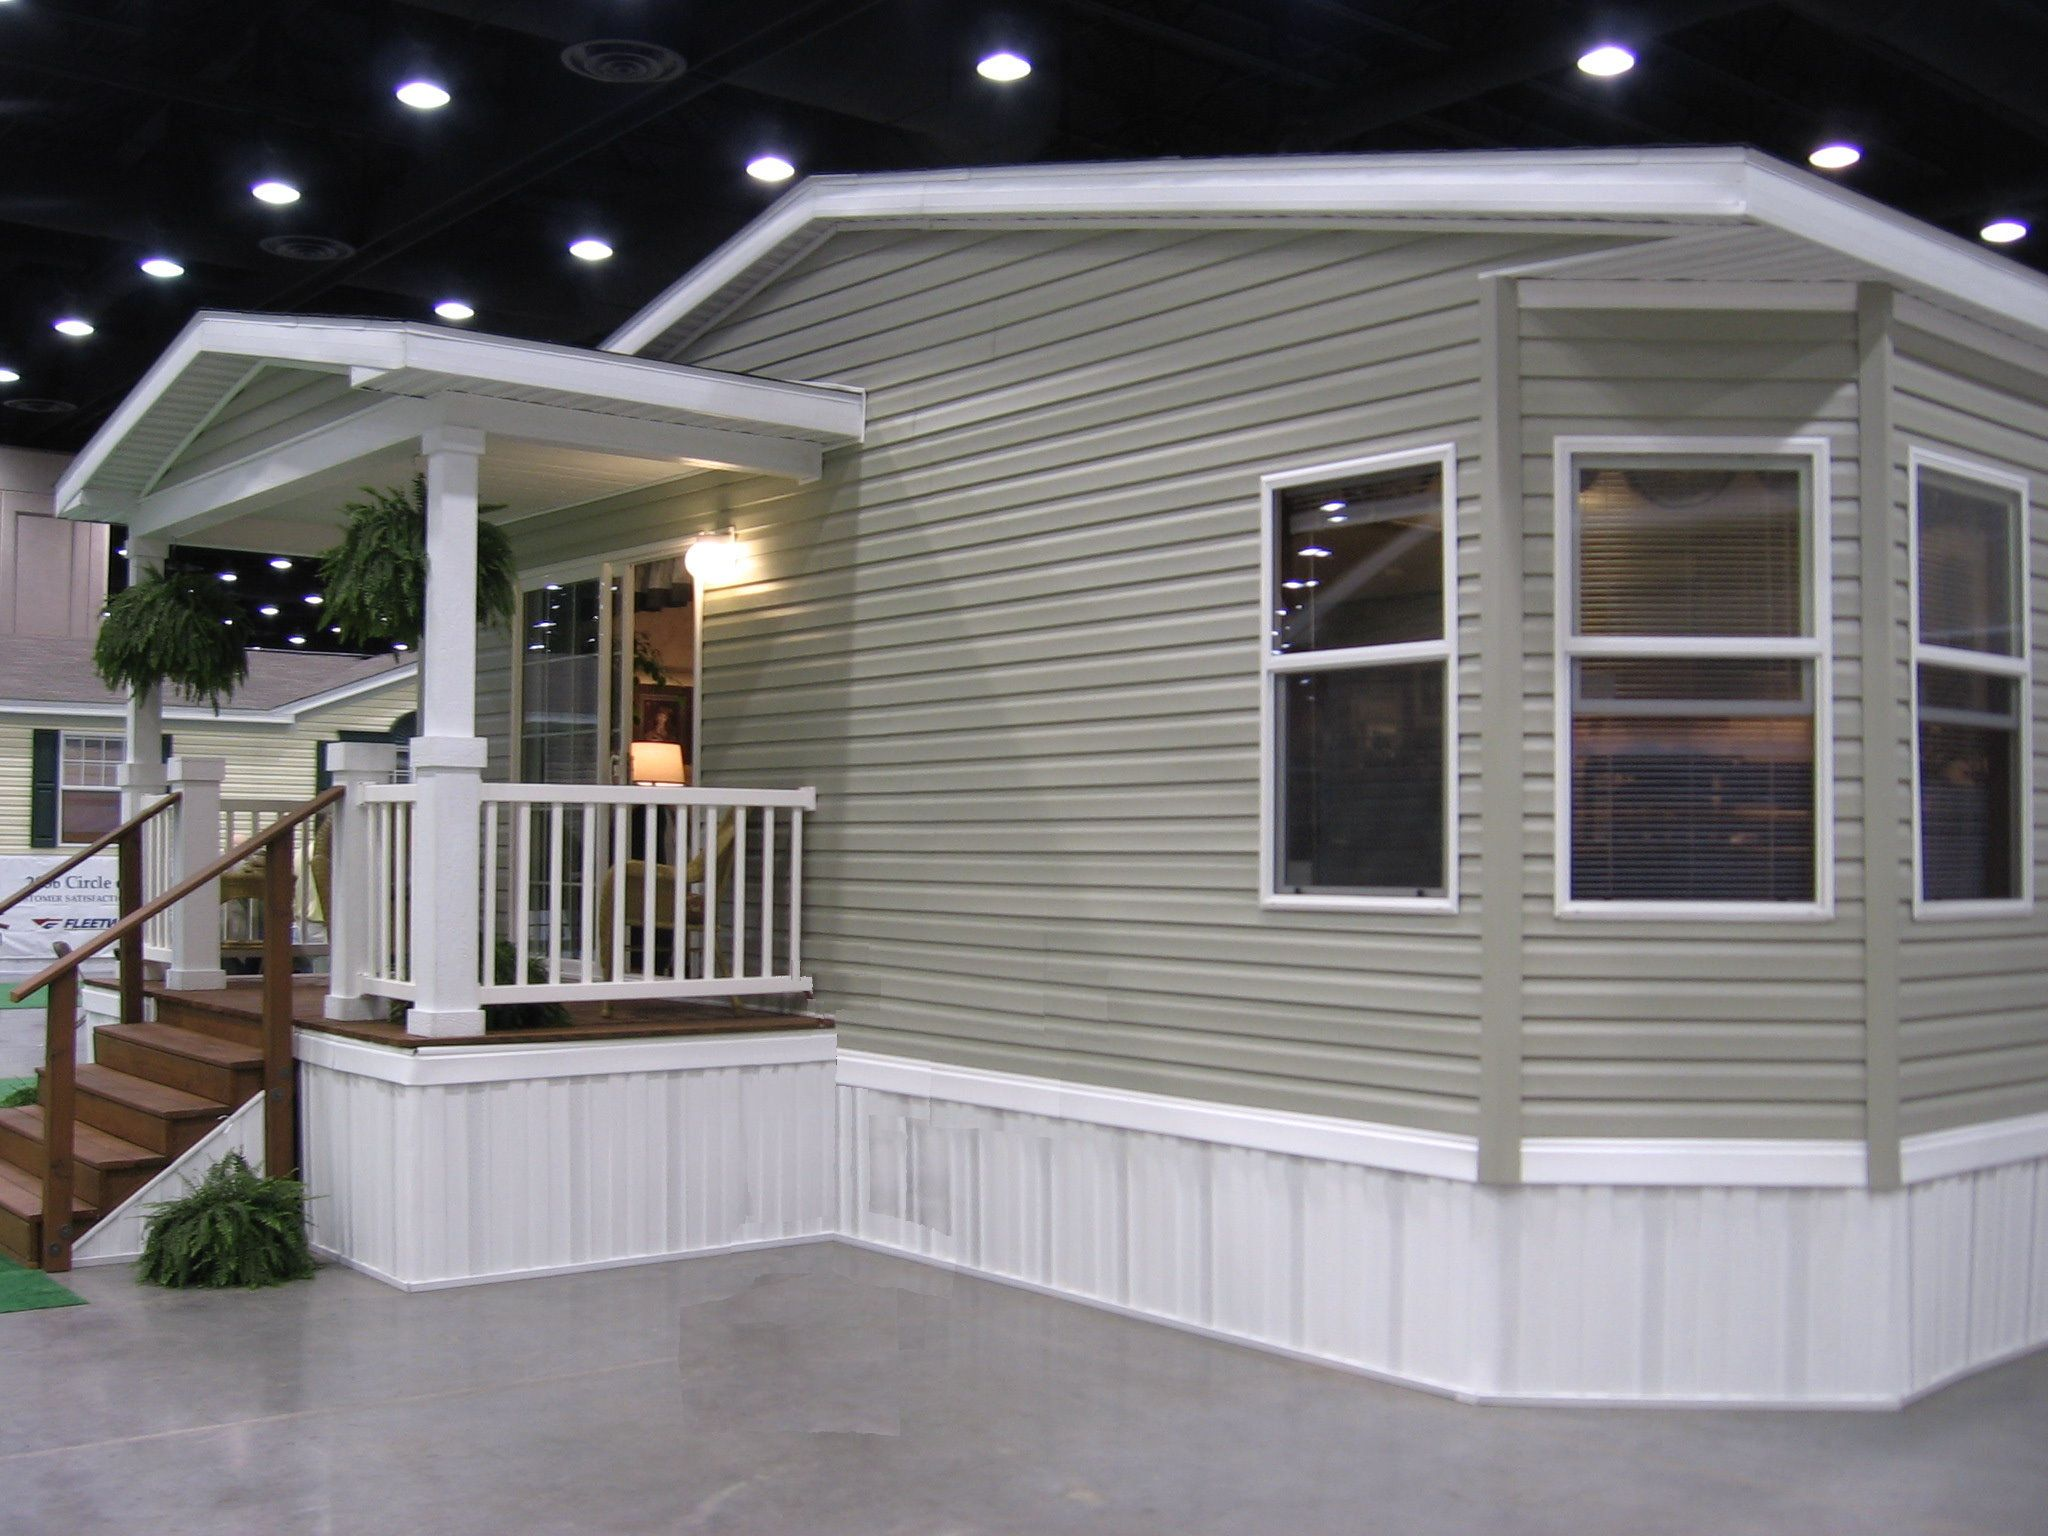 Mobile home deck ideas porch designs for mobile homes for Mobile home plans with porches